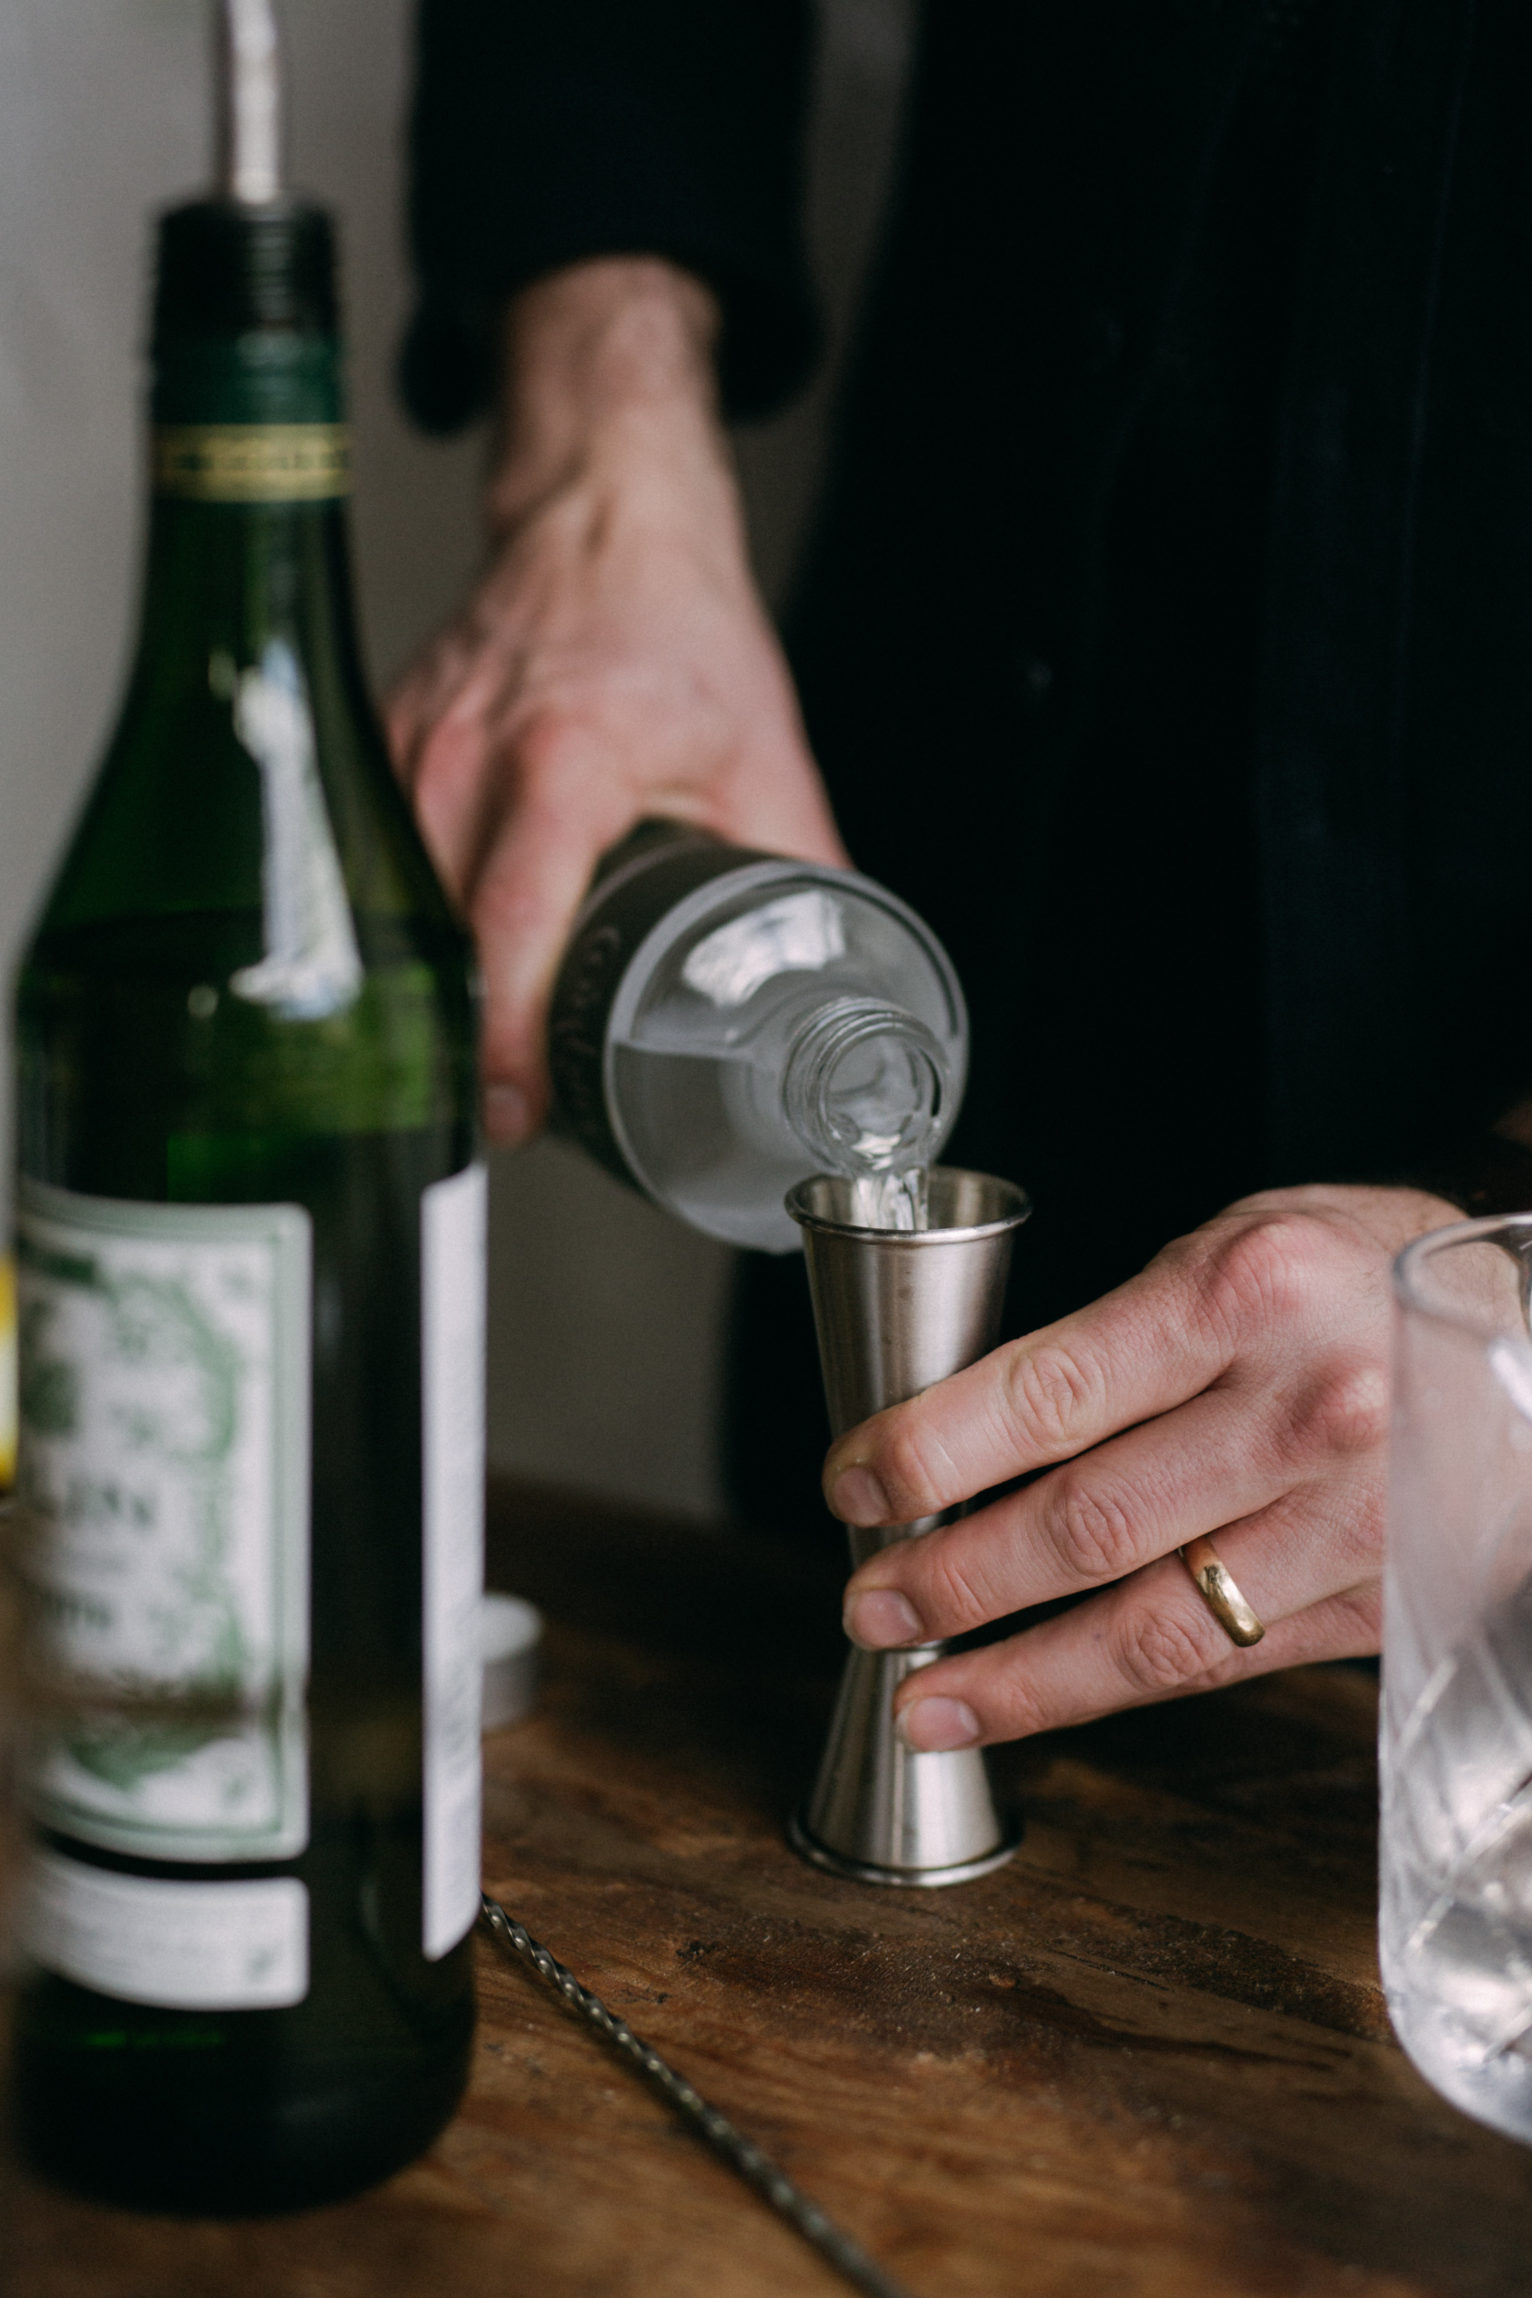 Pouring Gin into a Jigger